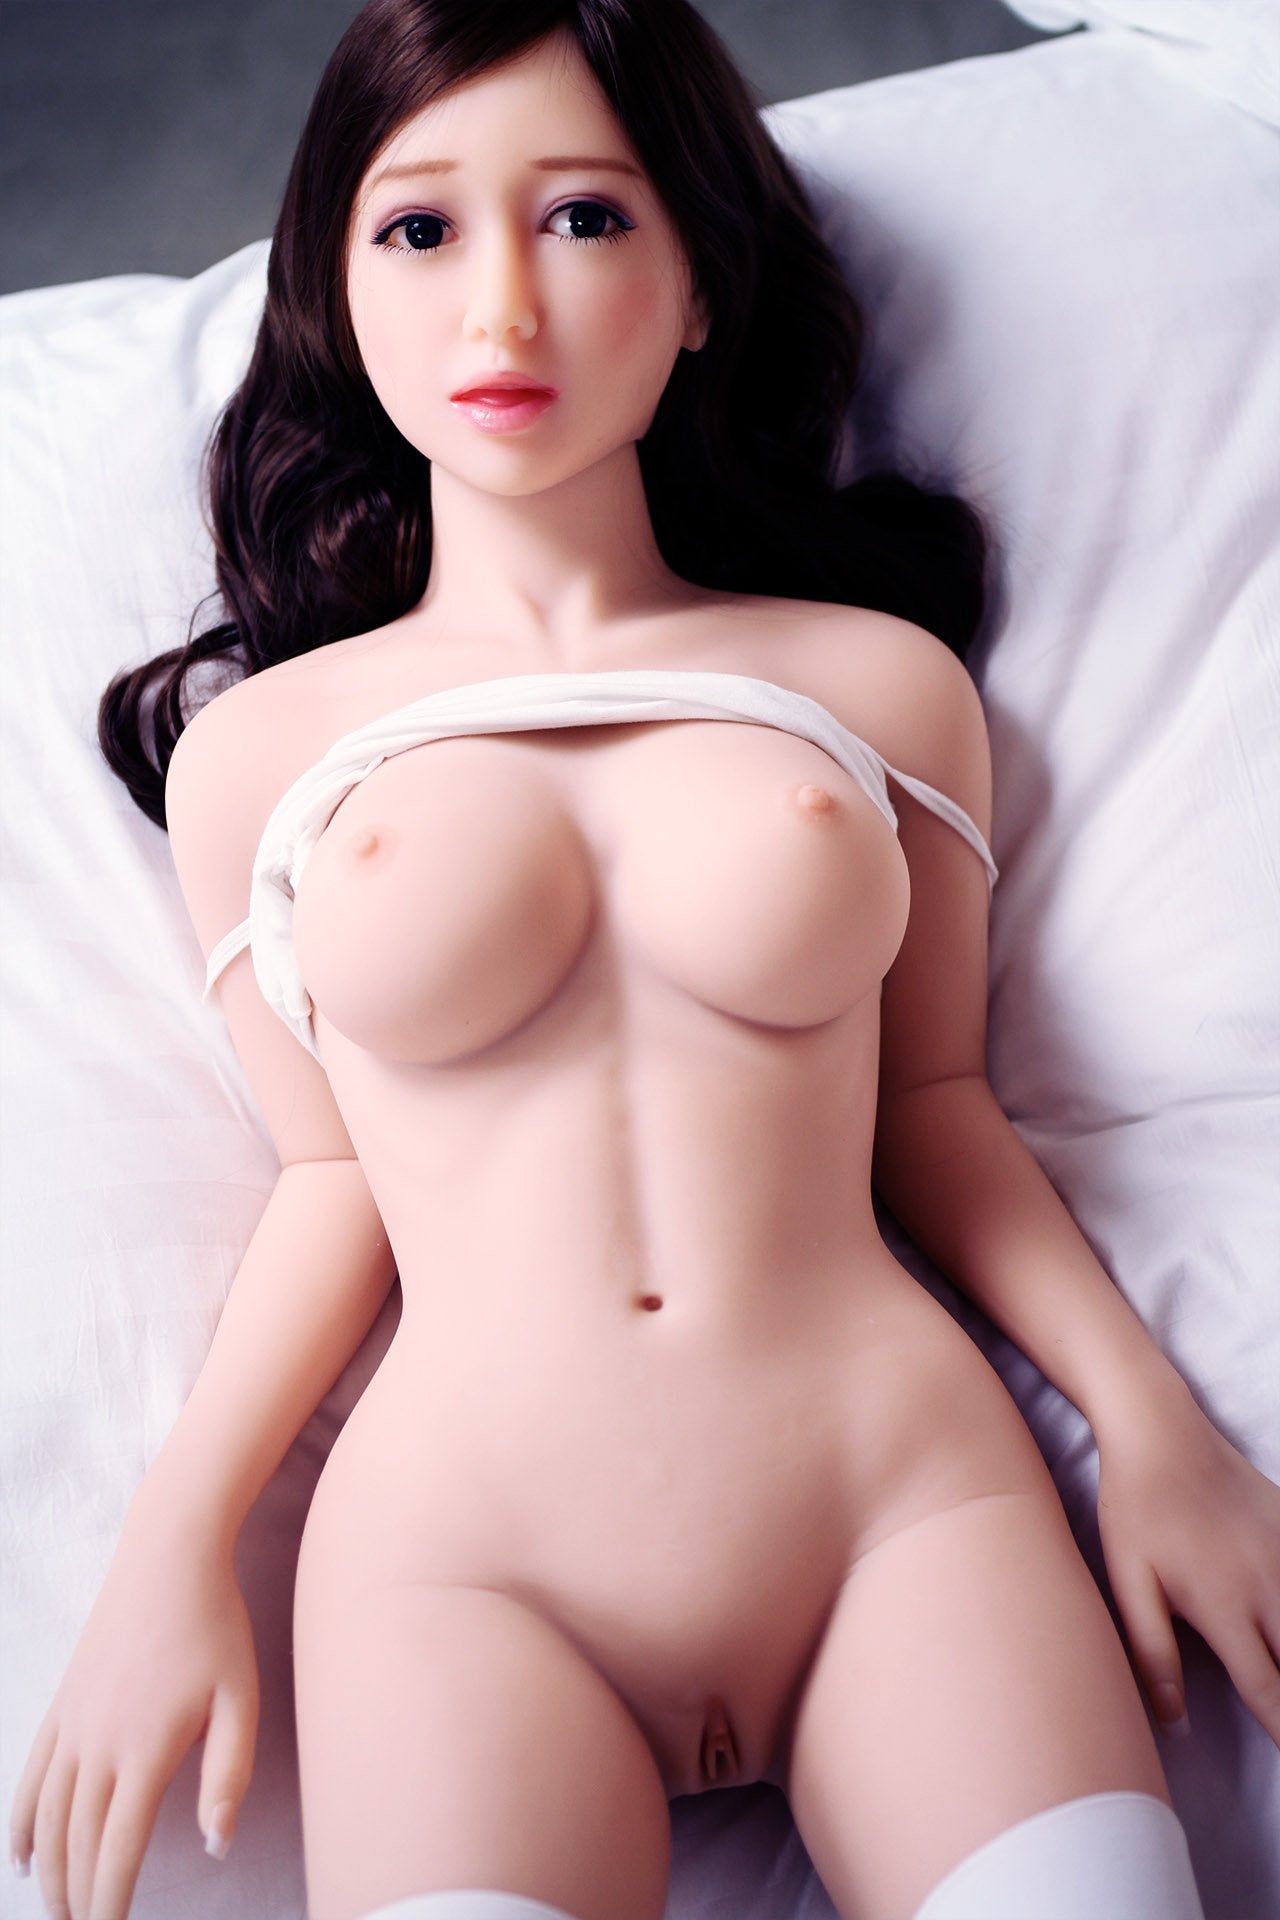 jonell 140cm black hair japanese jy medium tits skinny tpe asian small sex doll(12)